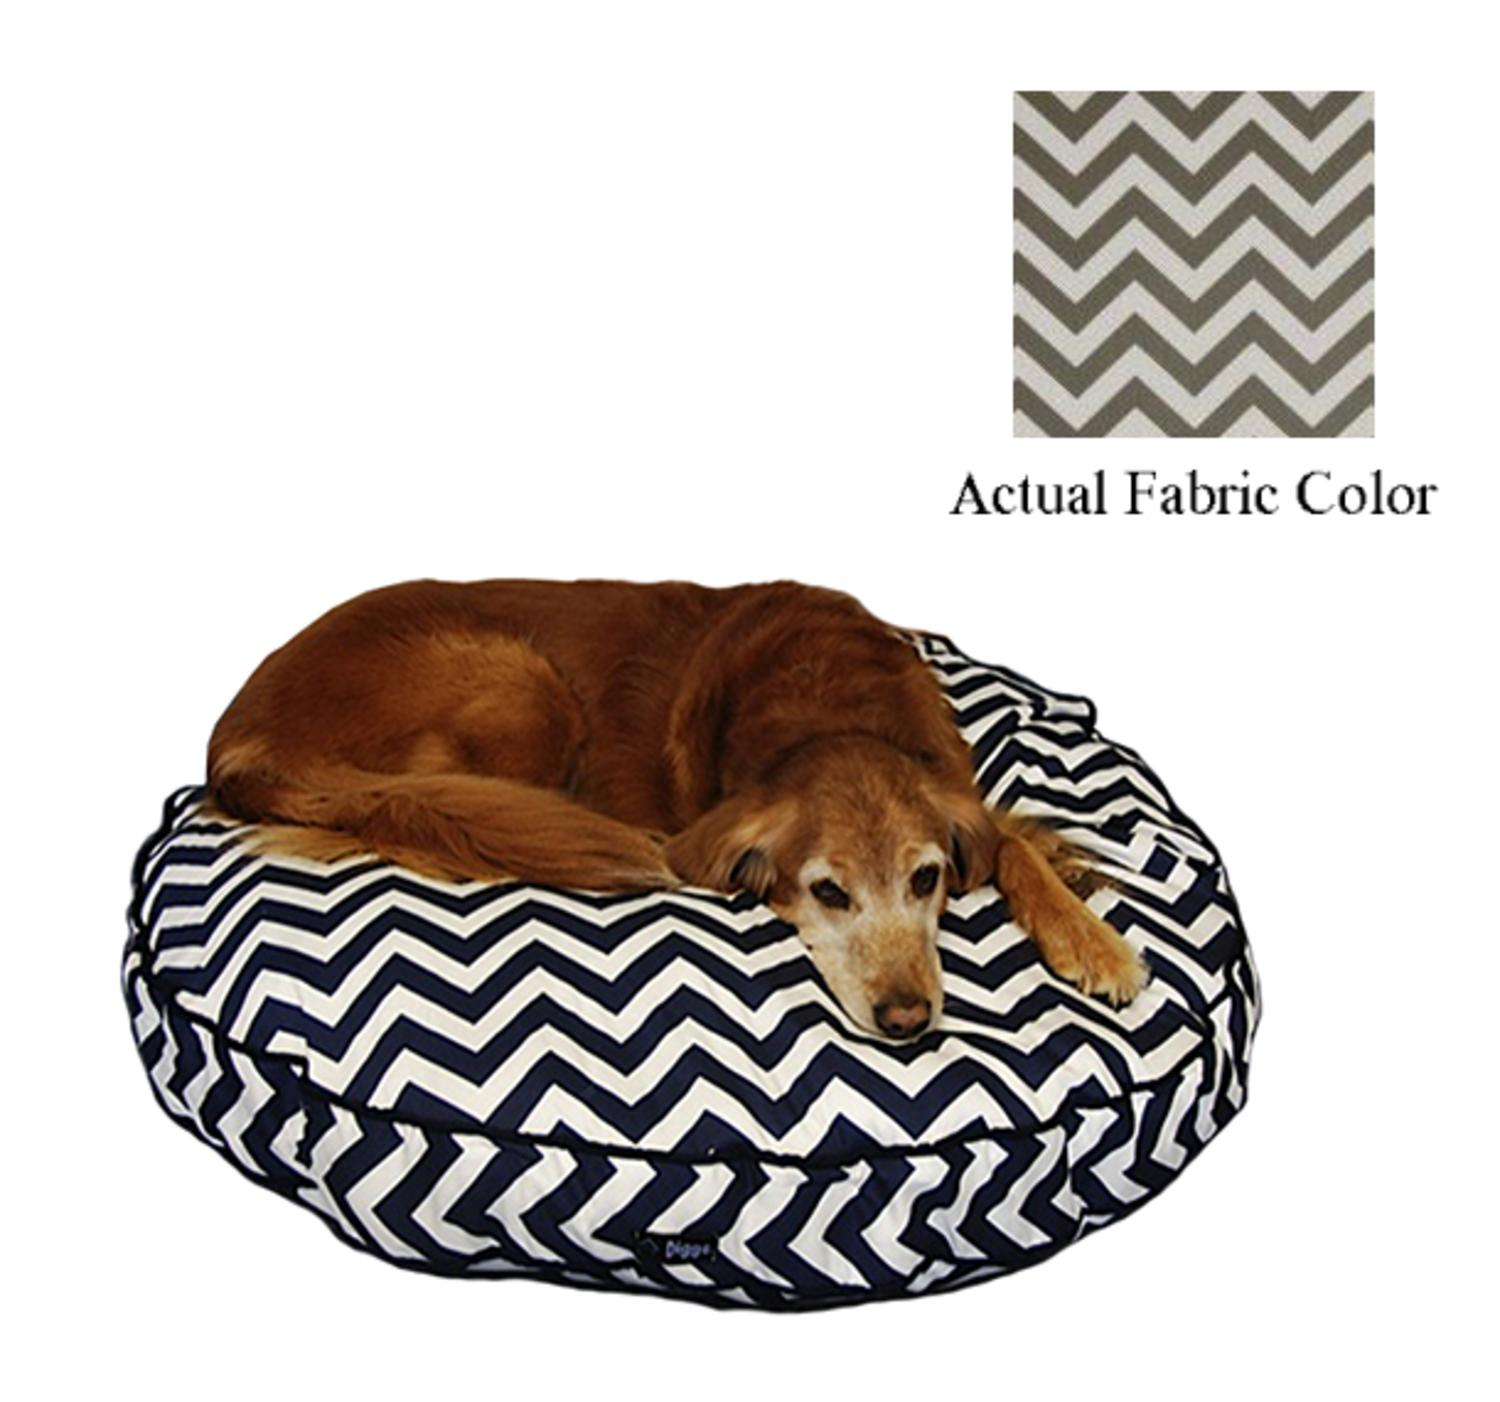 Gray and White Chevron Printed Deluxe Round Pet Dog Bed - Large